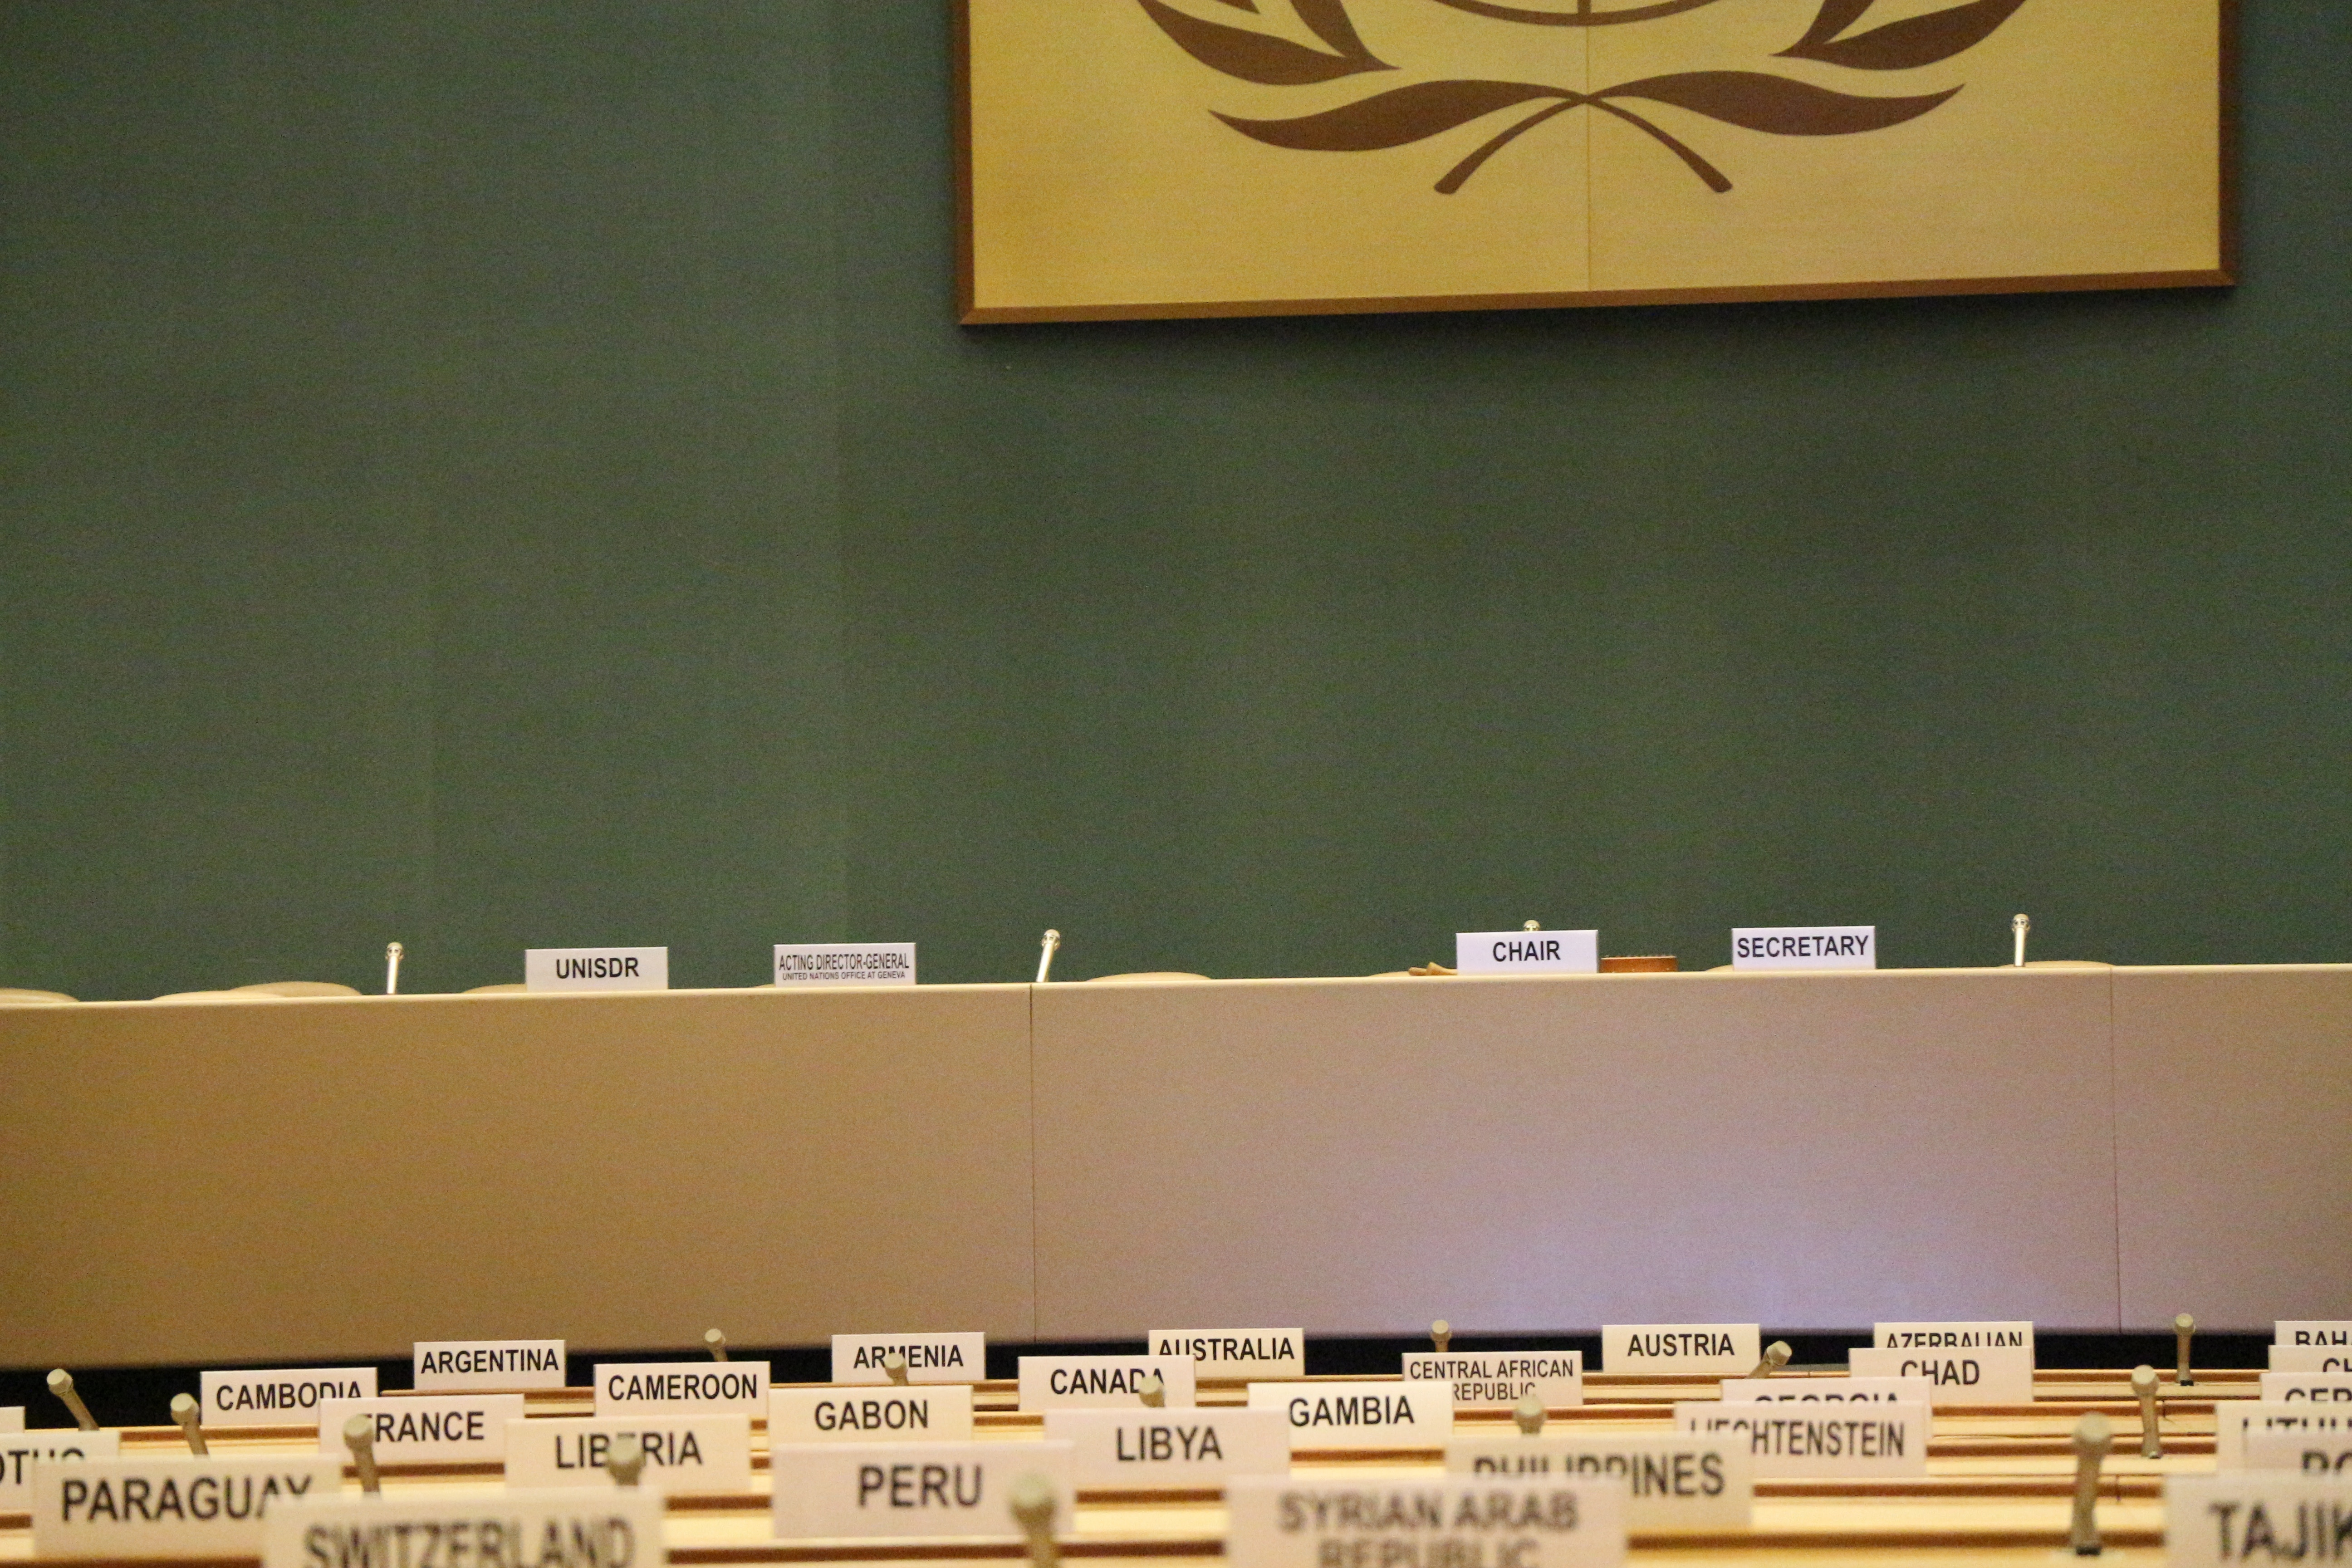 place markers at tables that bear the names of countries